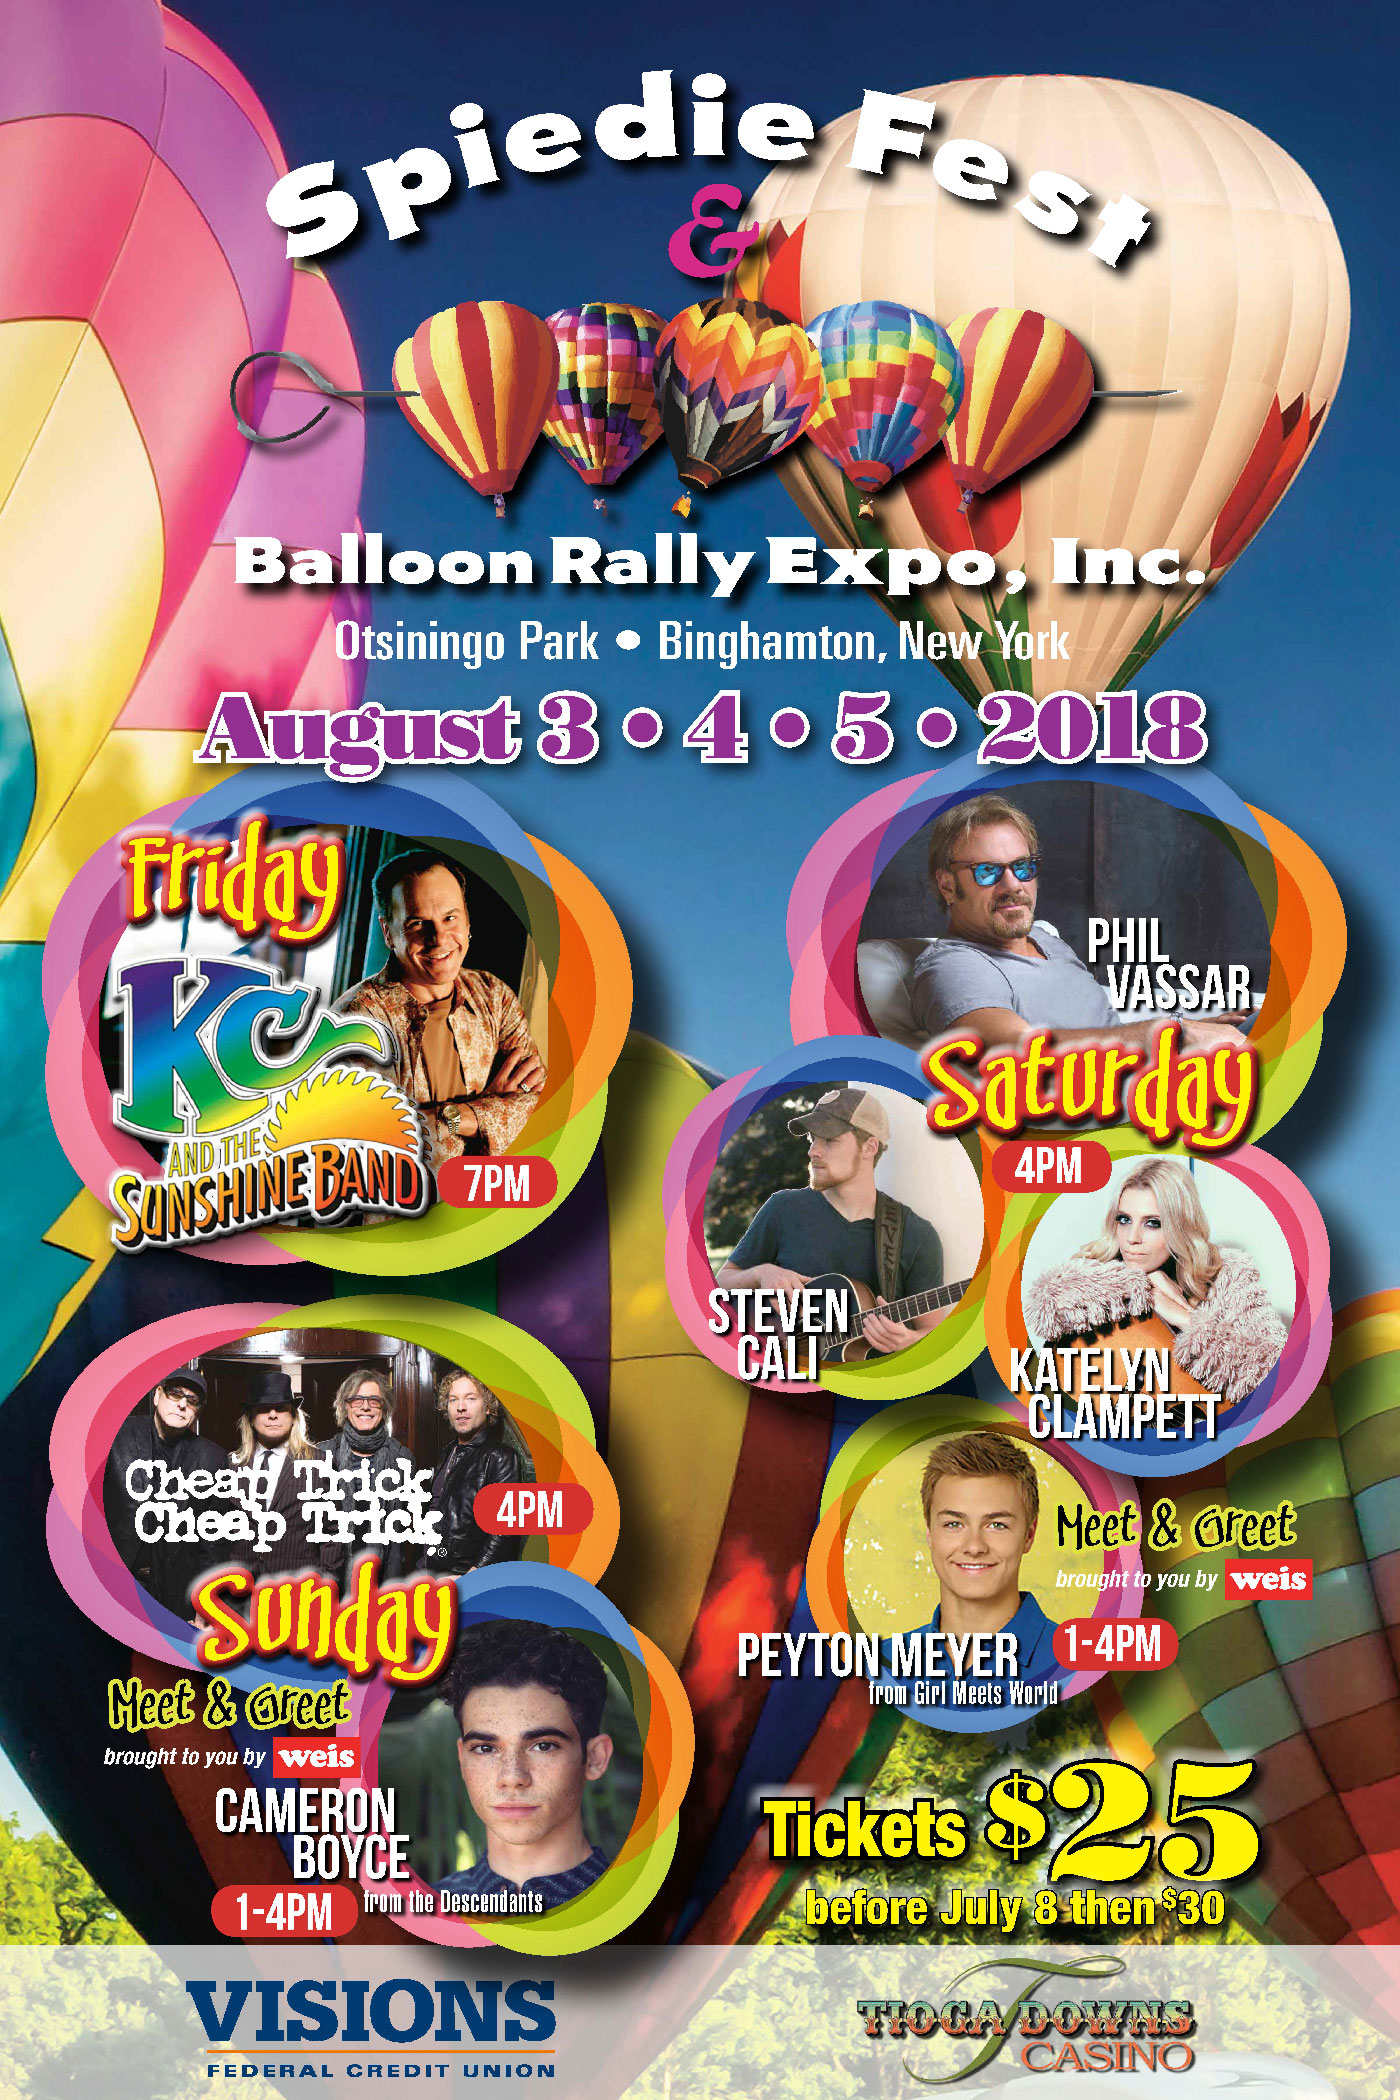 2018 Spiedie Fest Balloon Rally Otsiningo Park August 3 4 5